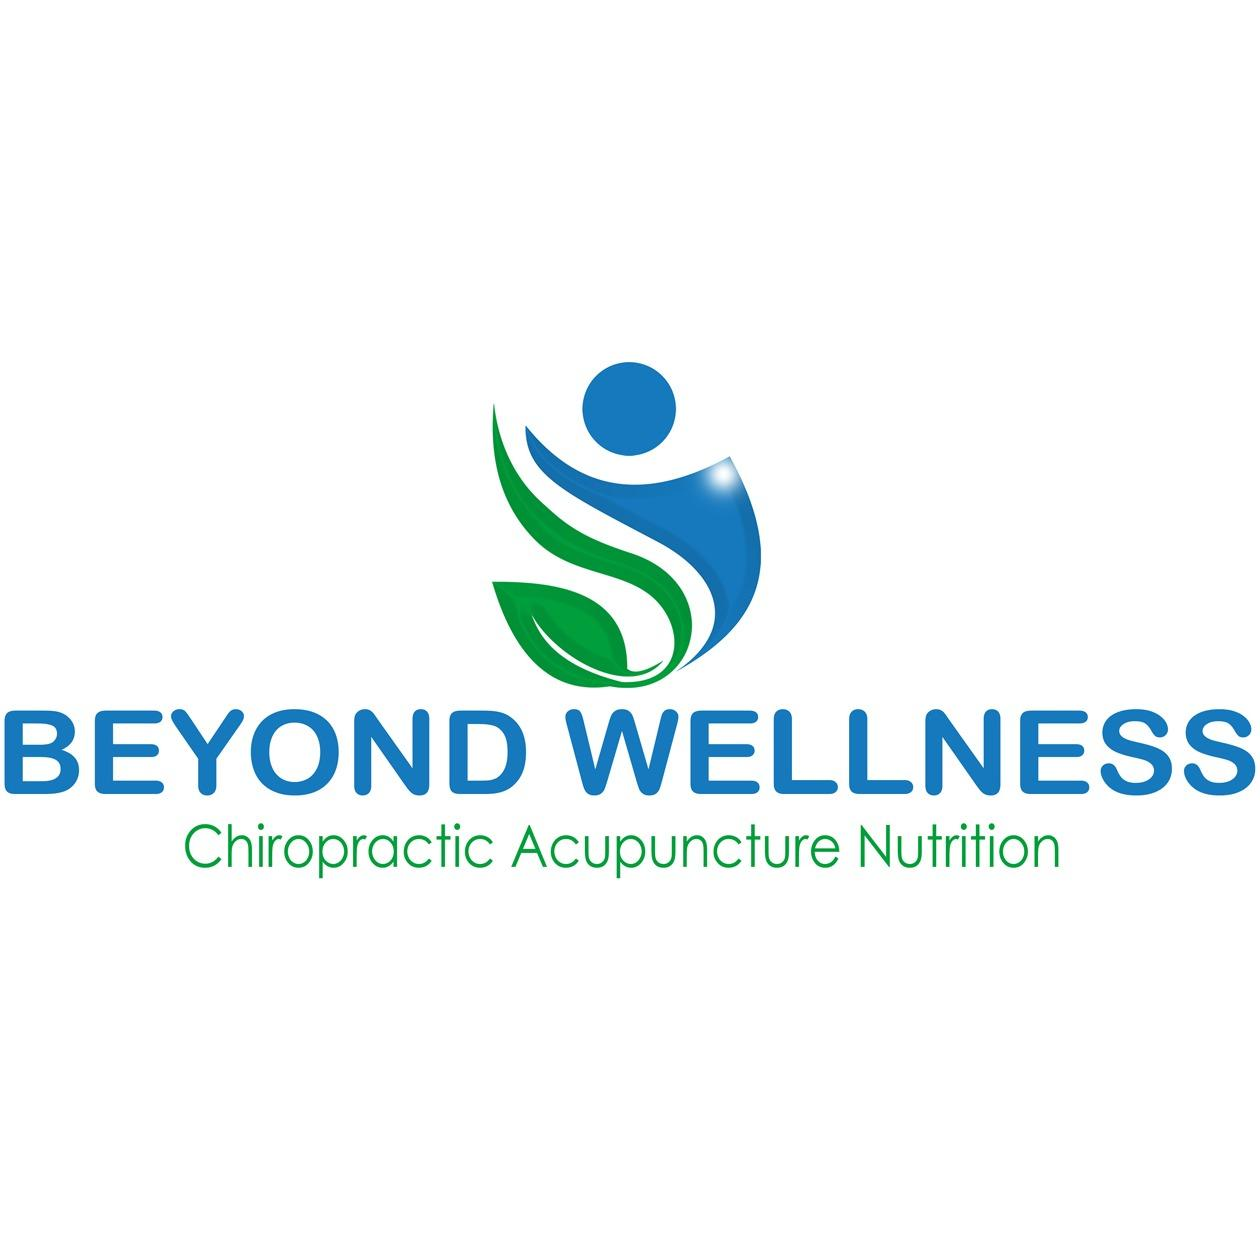 Beyond Wellness - Chiropractic Acupuncture Physical Therapy